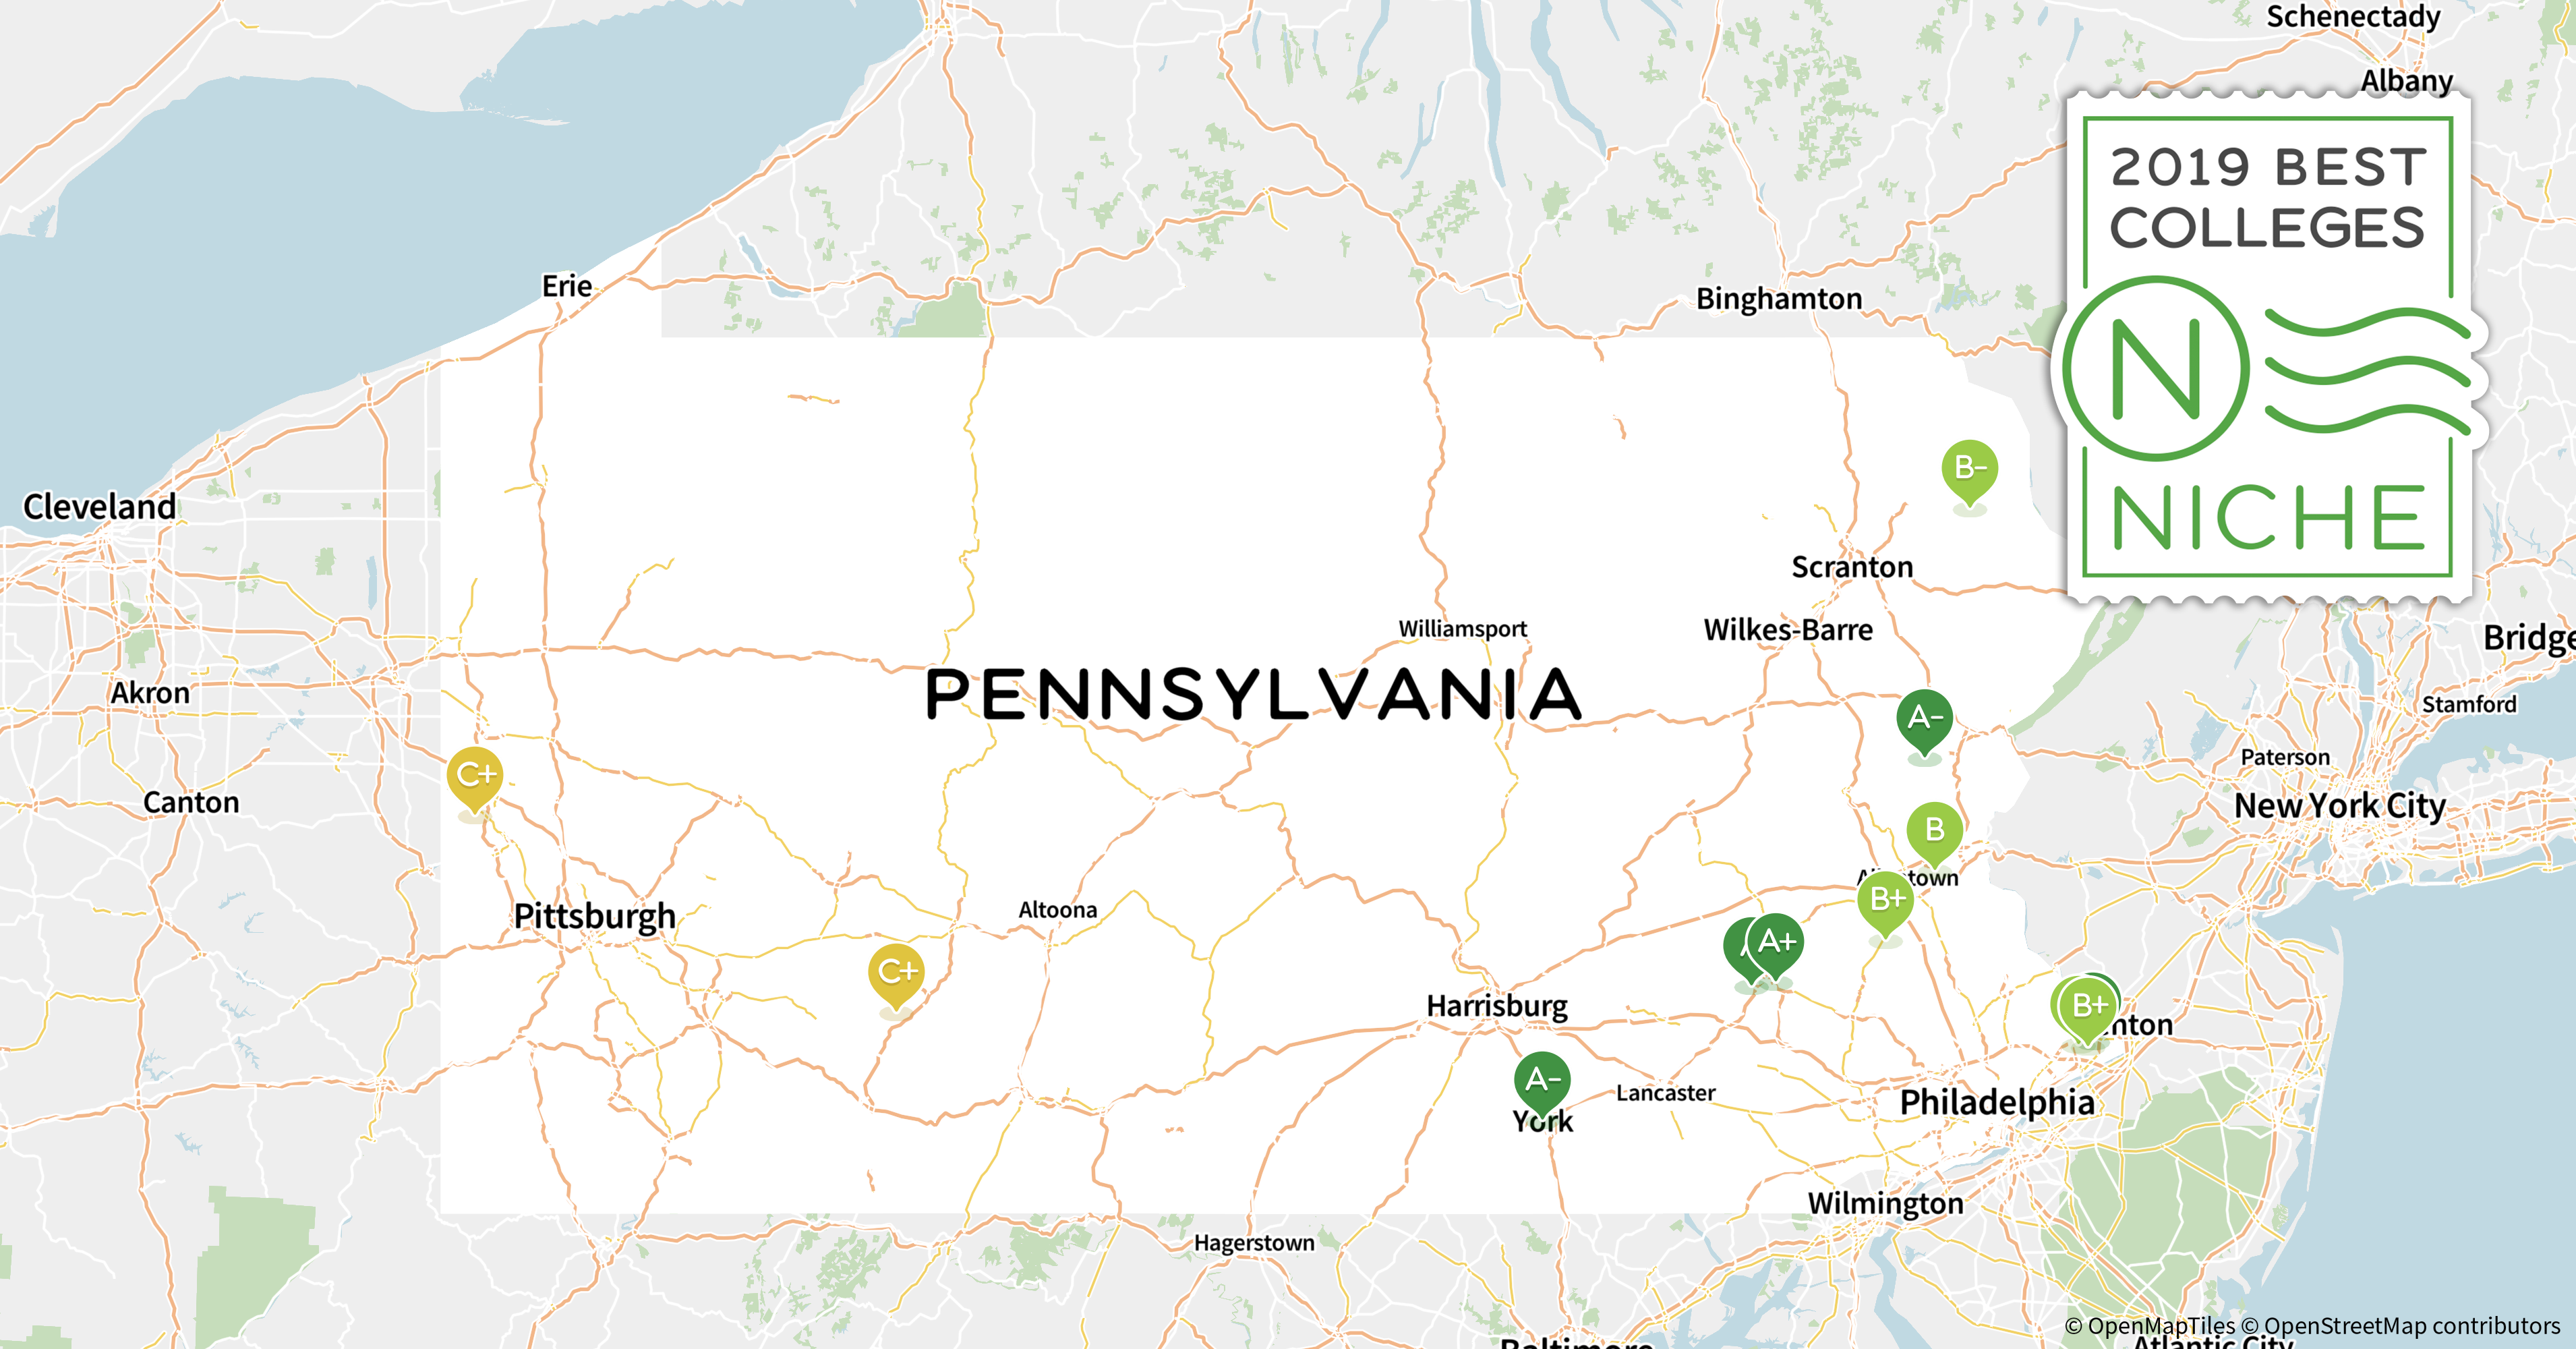 Geneva College Campus Map.2019 Best Colleges In Pennsylvania Niche